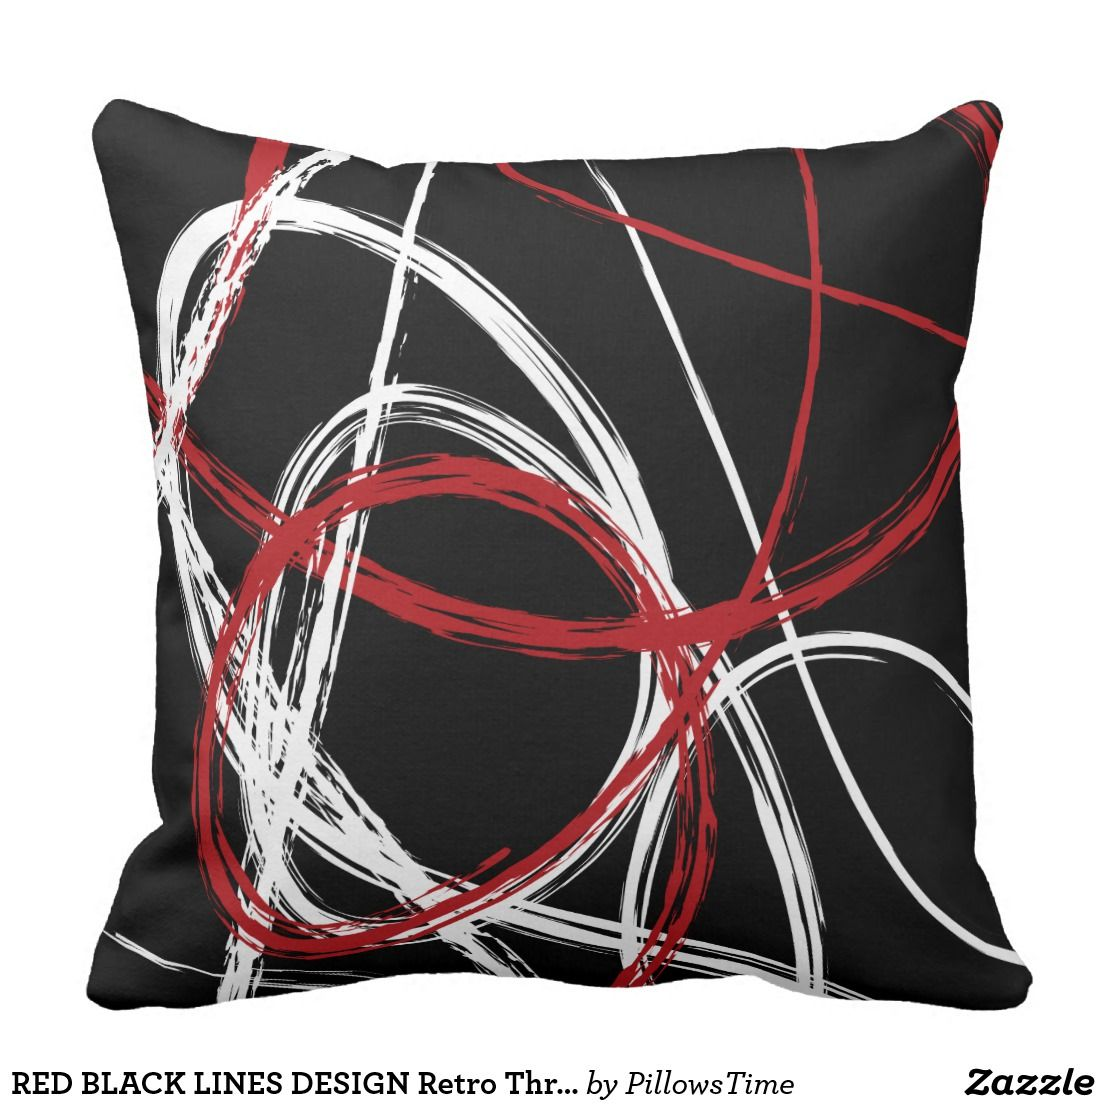 Red Black Lines Design Retro Throw Pillow Zazzle Com Retro Throw Pillows Throw Pillows Decorative Pillow Cases